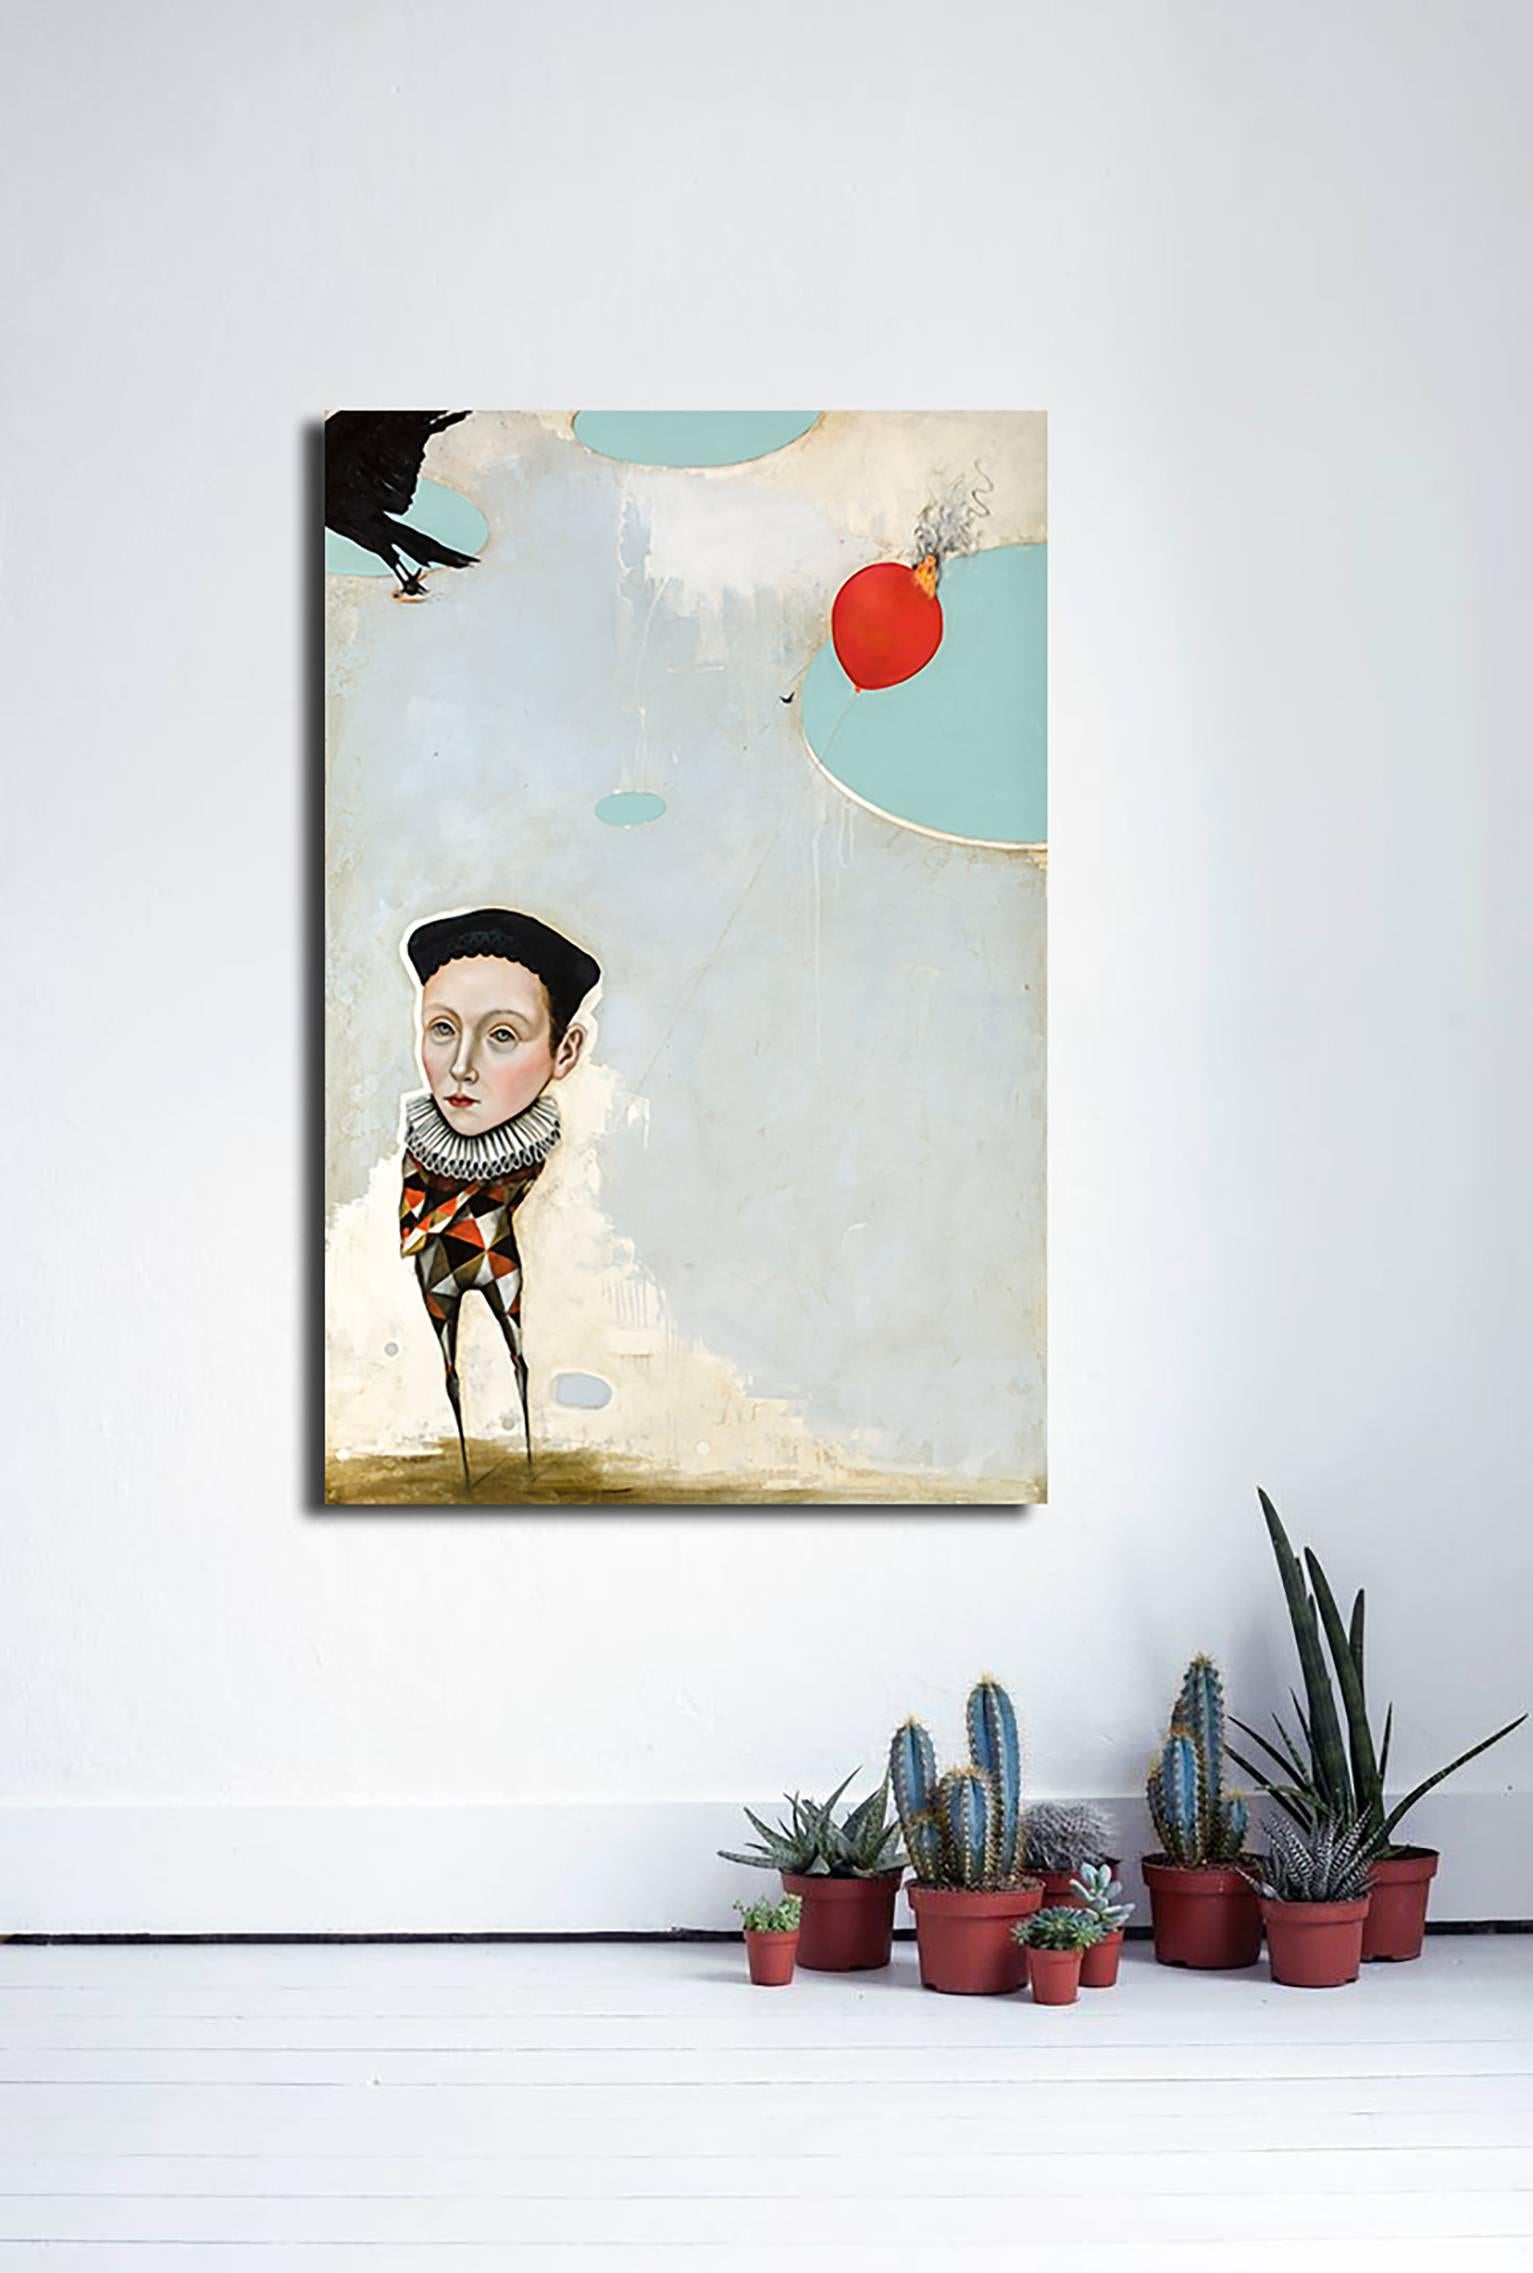 The Last Balloon, oil on canvas, pop-surrealism figurative painting, w harlequin